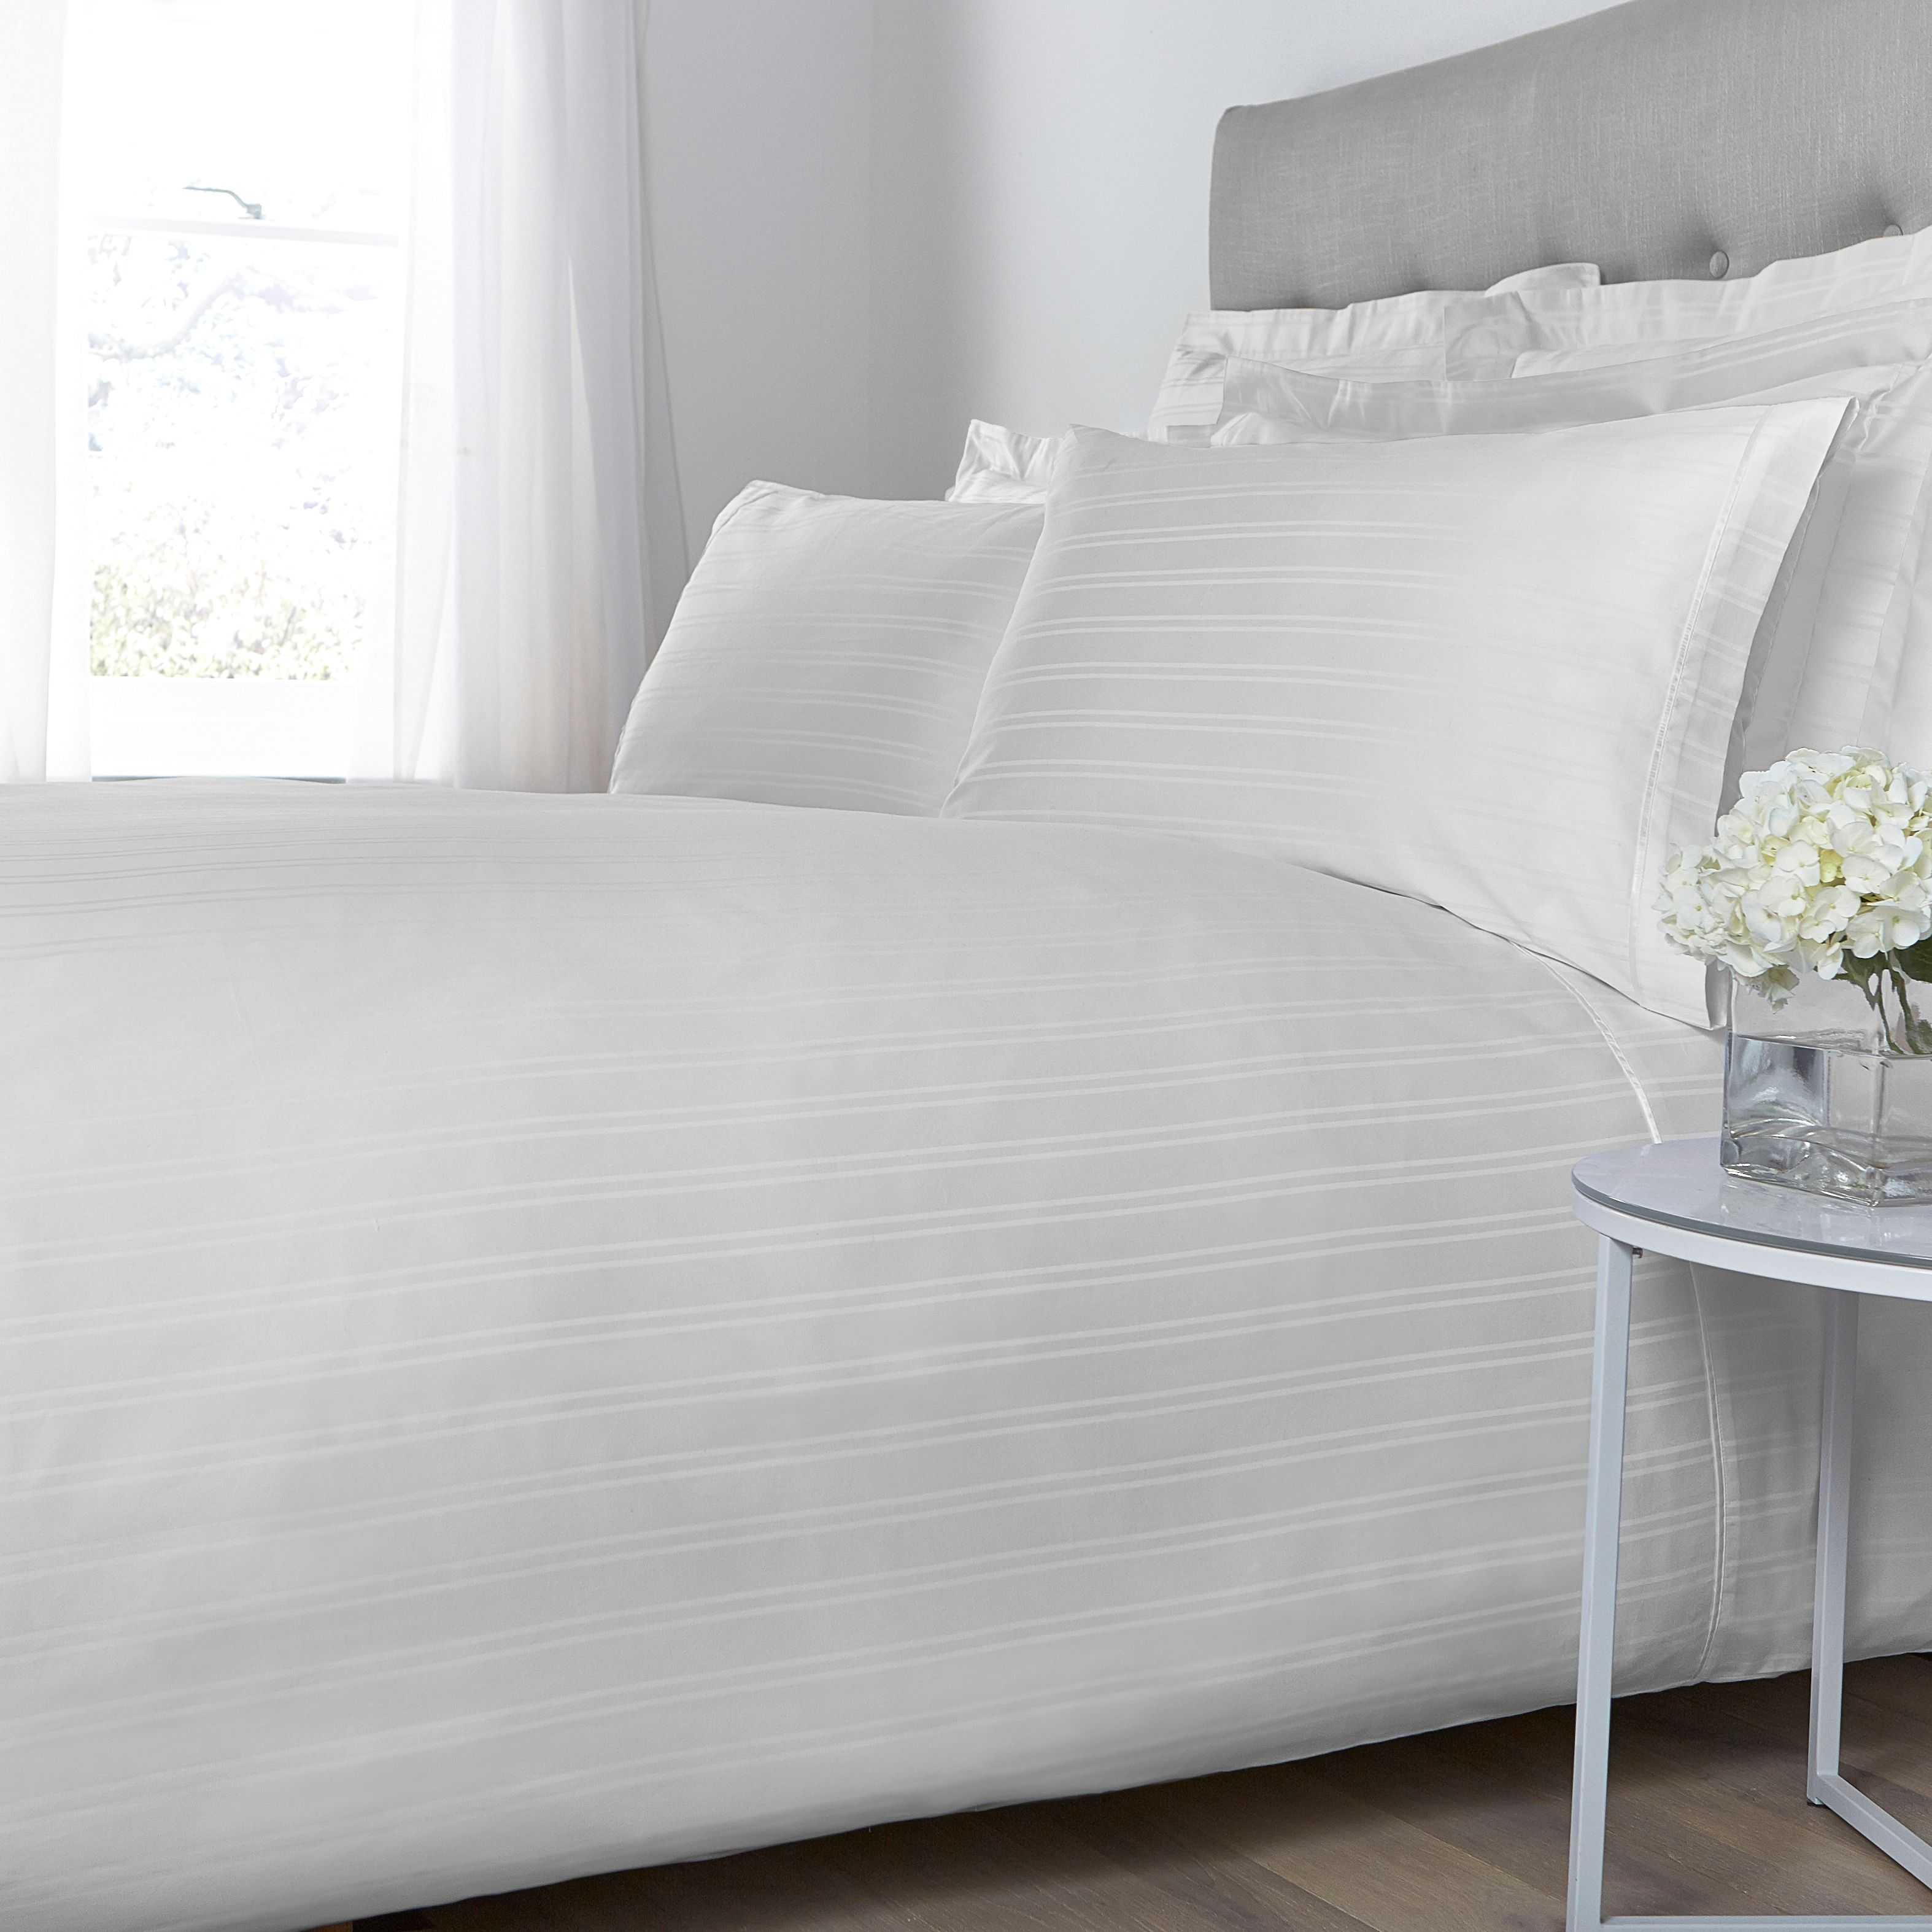 Luxury hotel collection woven stripe deep fitted sheet review for Luxury hotel 750 collection sheets